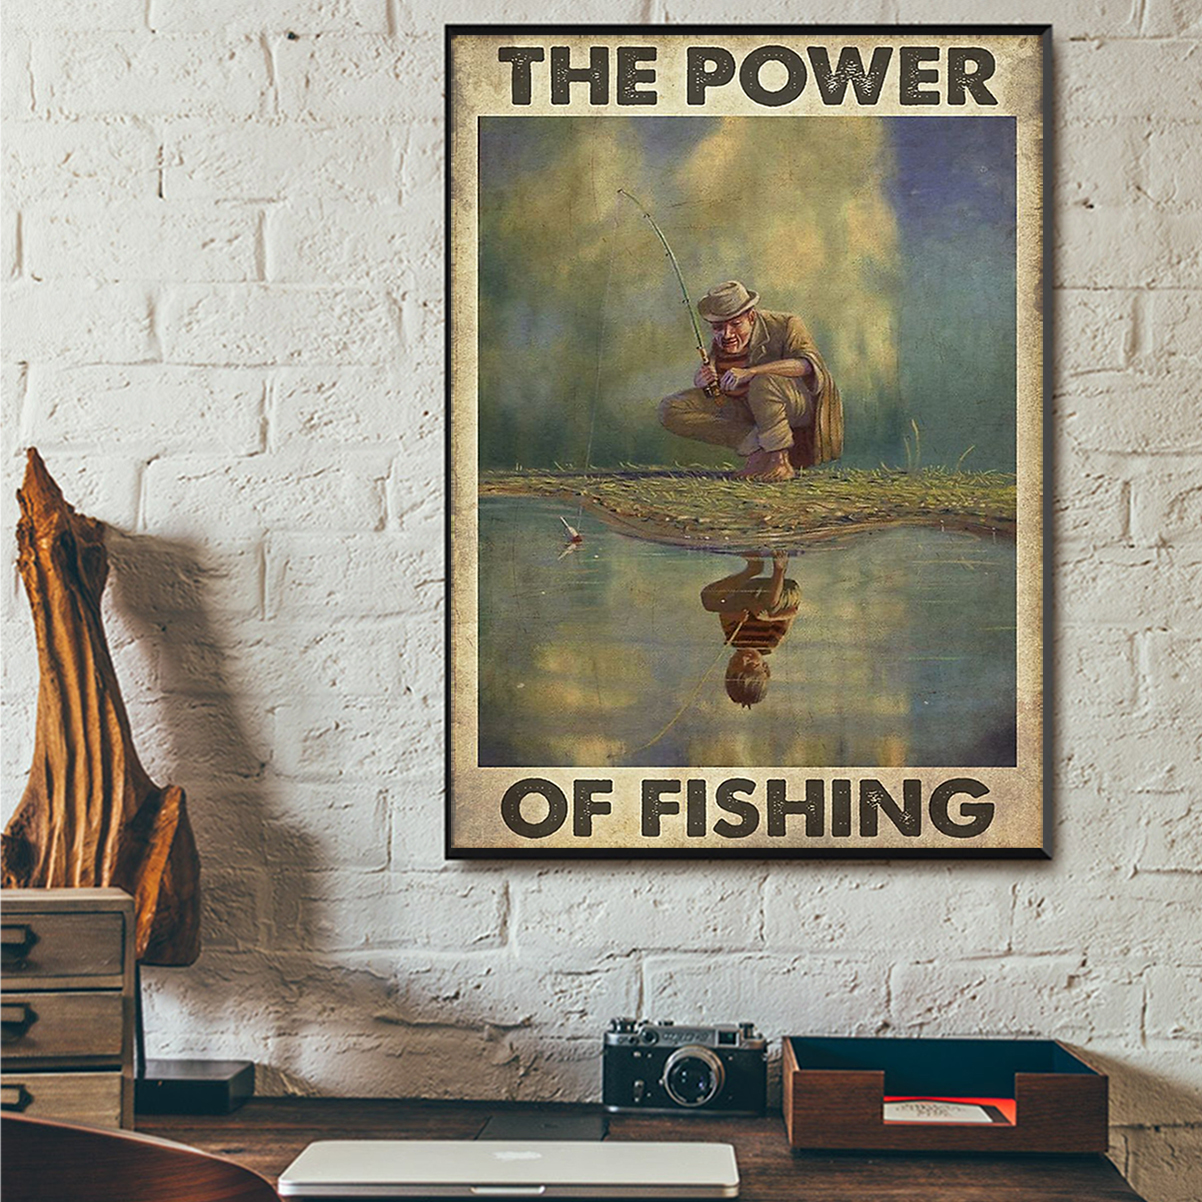 The power of fishing poster A1